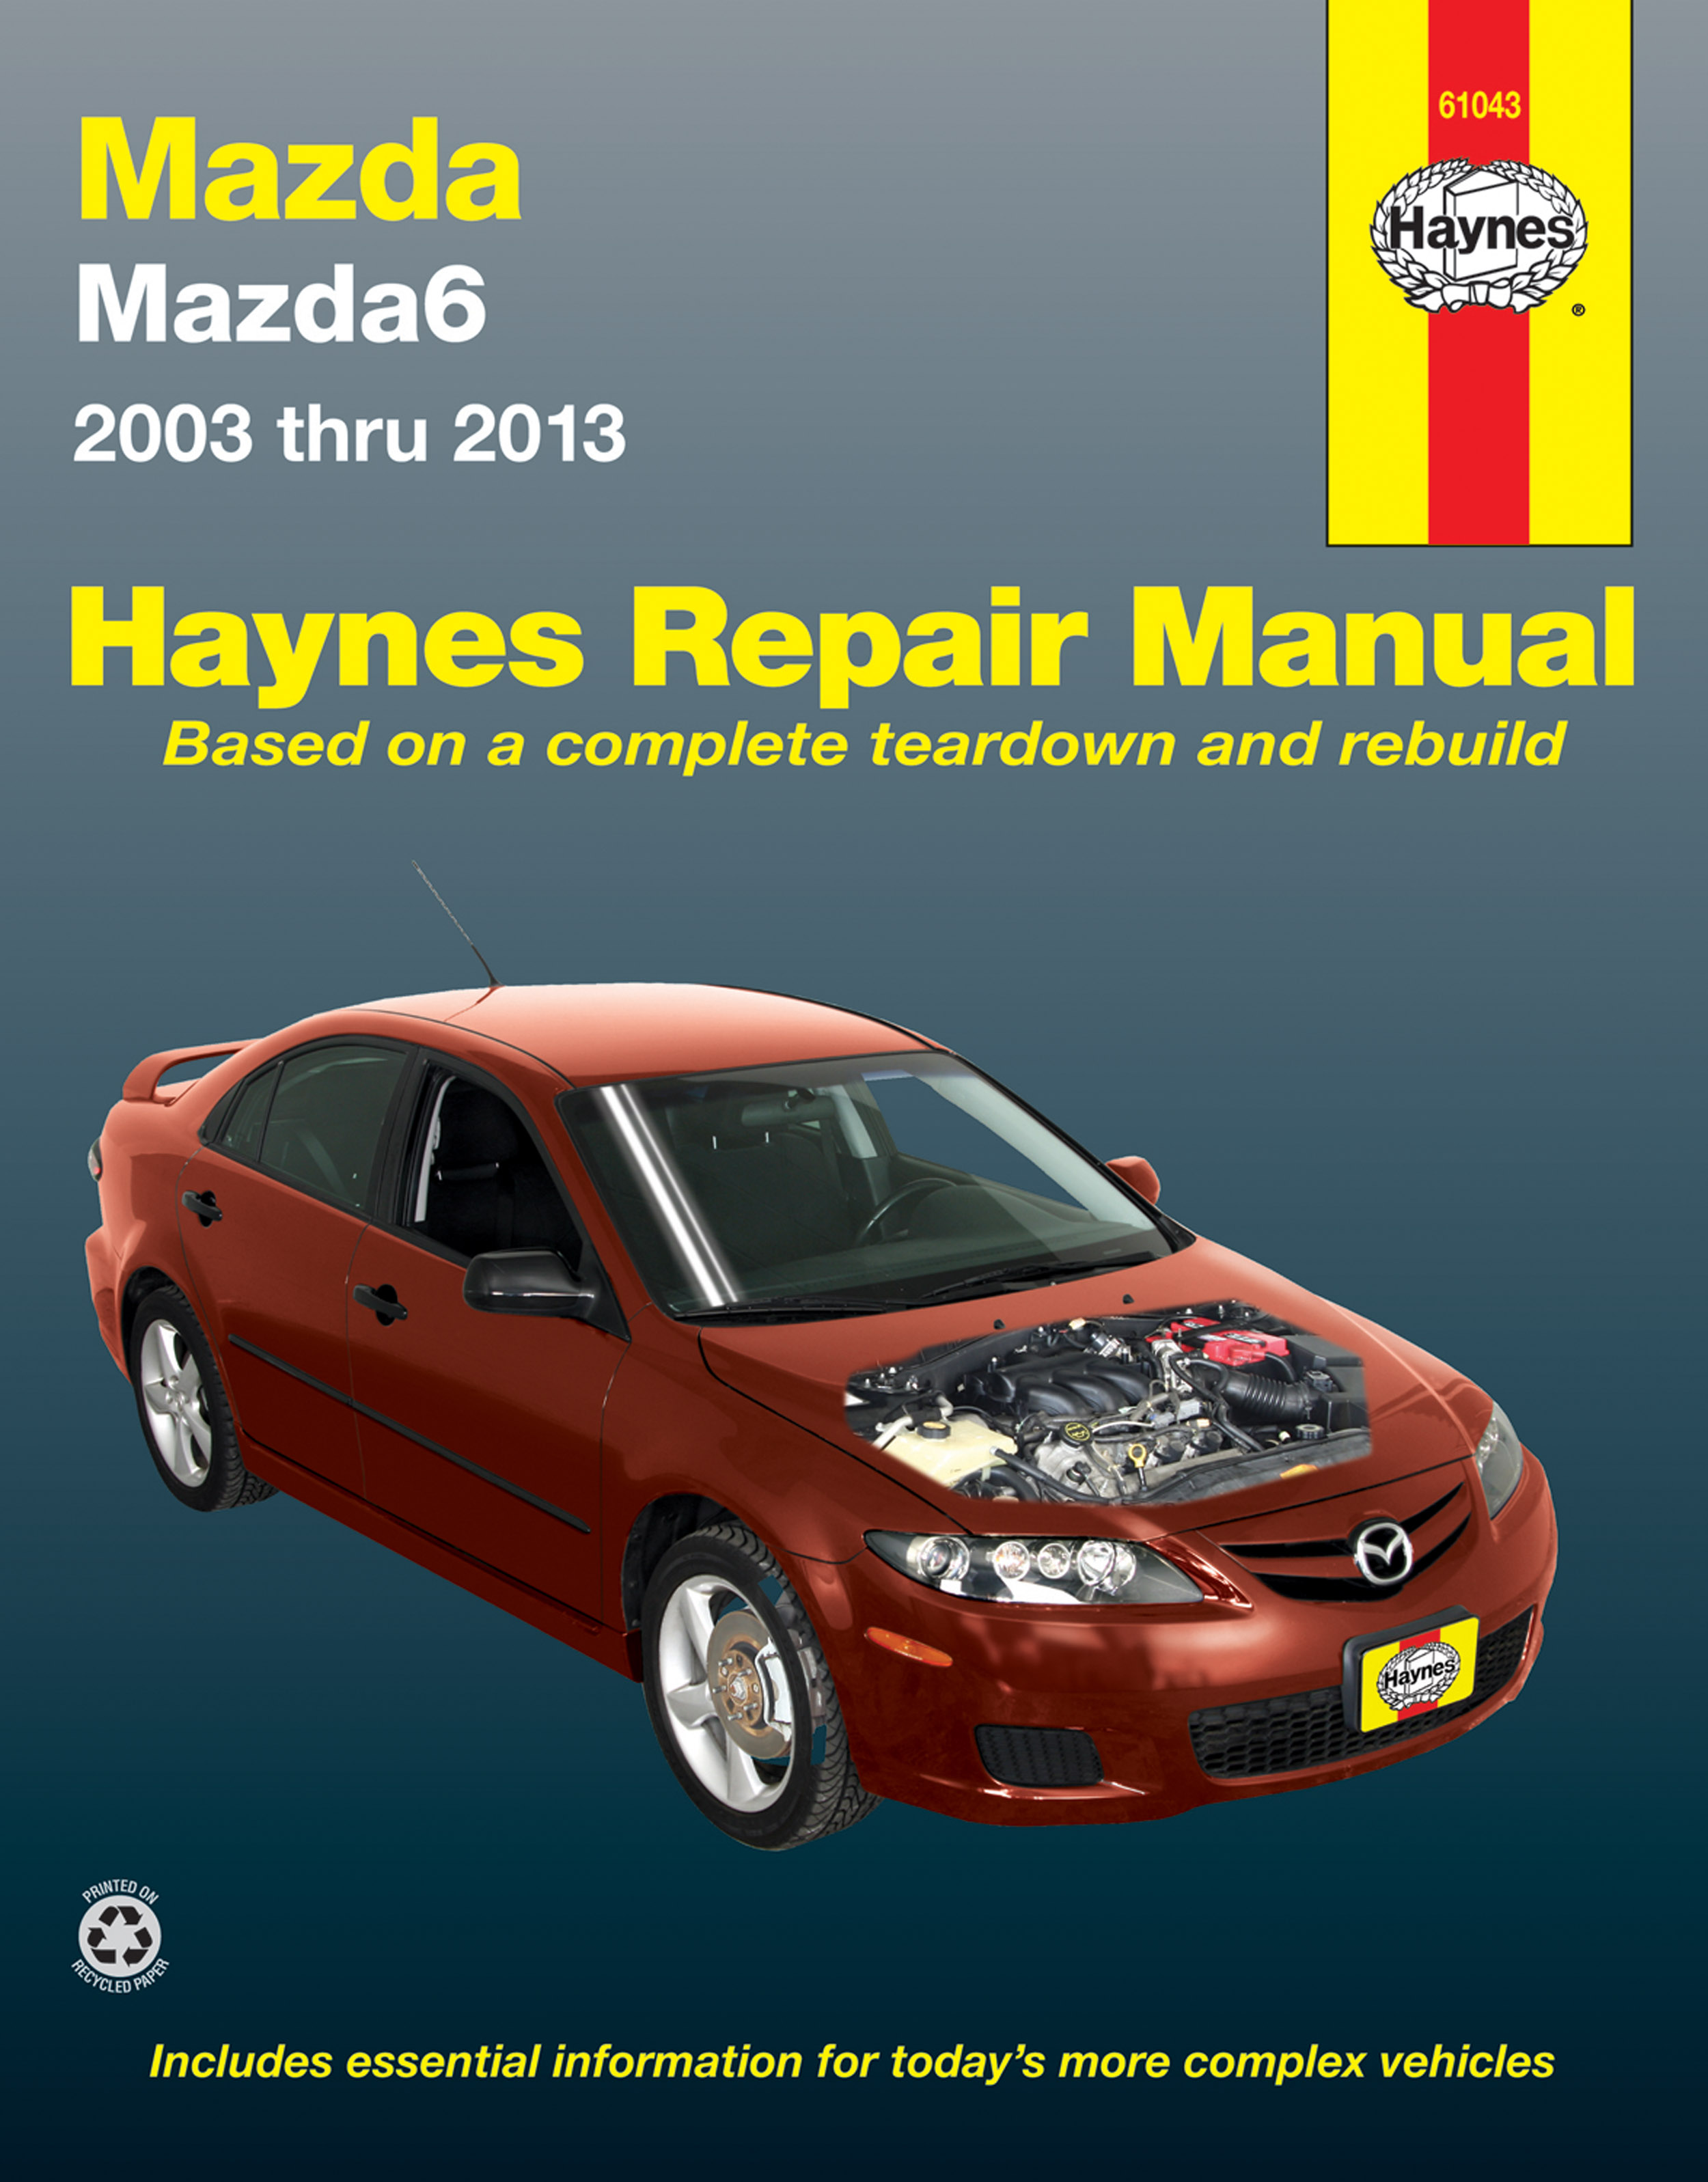 mazda6 03 13 haynes repair manual haynes manuals rh haynes com 2005 Mazda 6 Repair Manual Mazda Auto Repair Manual